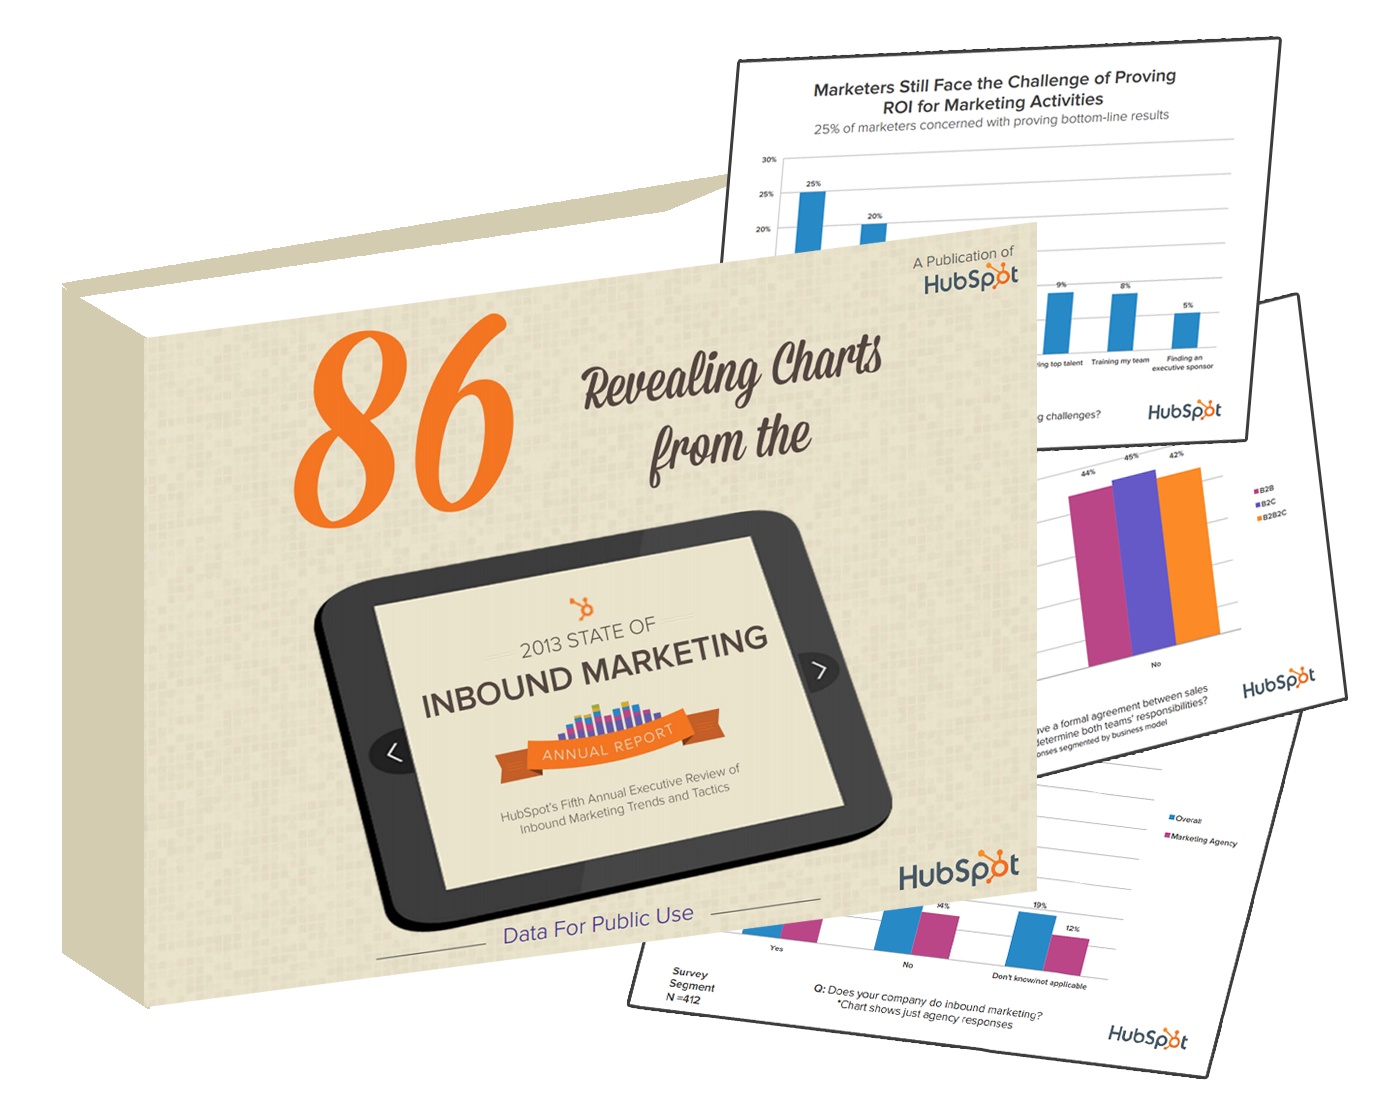 Download 86 Inbound Marketing Charts to Use in Your Next Presentation